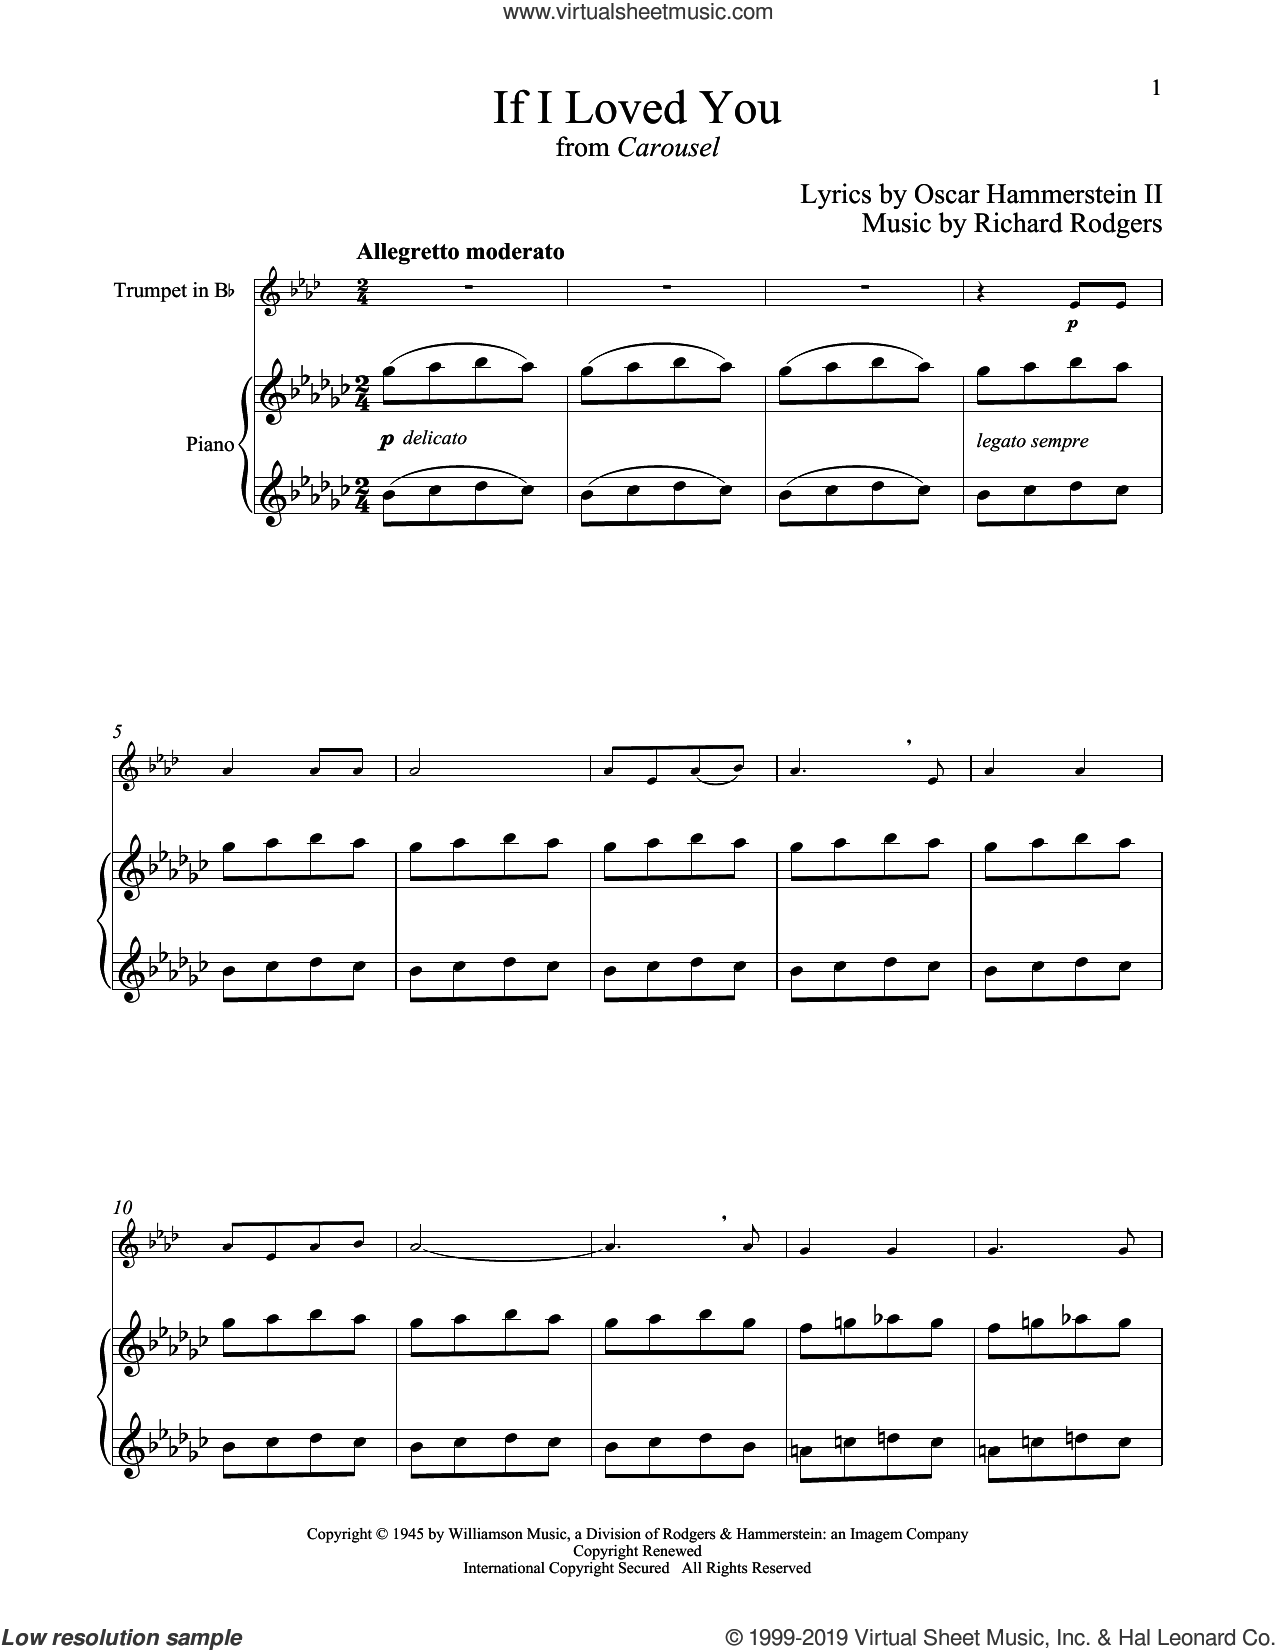 If I Loved You (from Carousel) sheet music for trumpet and piano by Rodgers & Hammerstein, Oscar II Hammerstein and Richard Rodgers, intermediate skill level